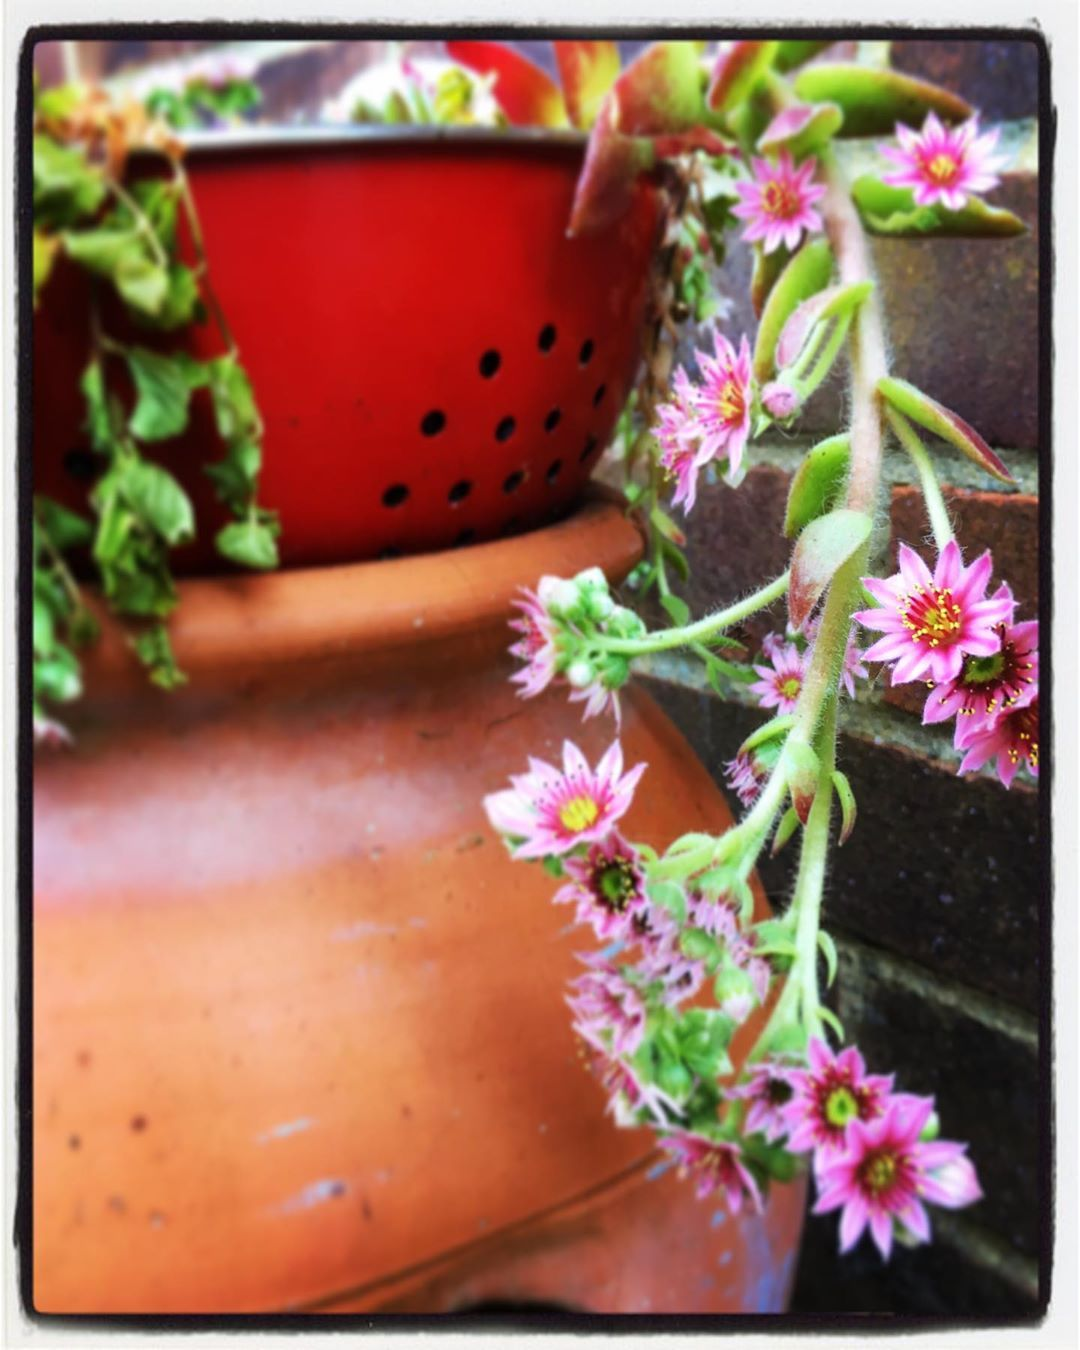 Pretty little flowering succulent in an old red colander